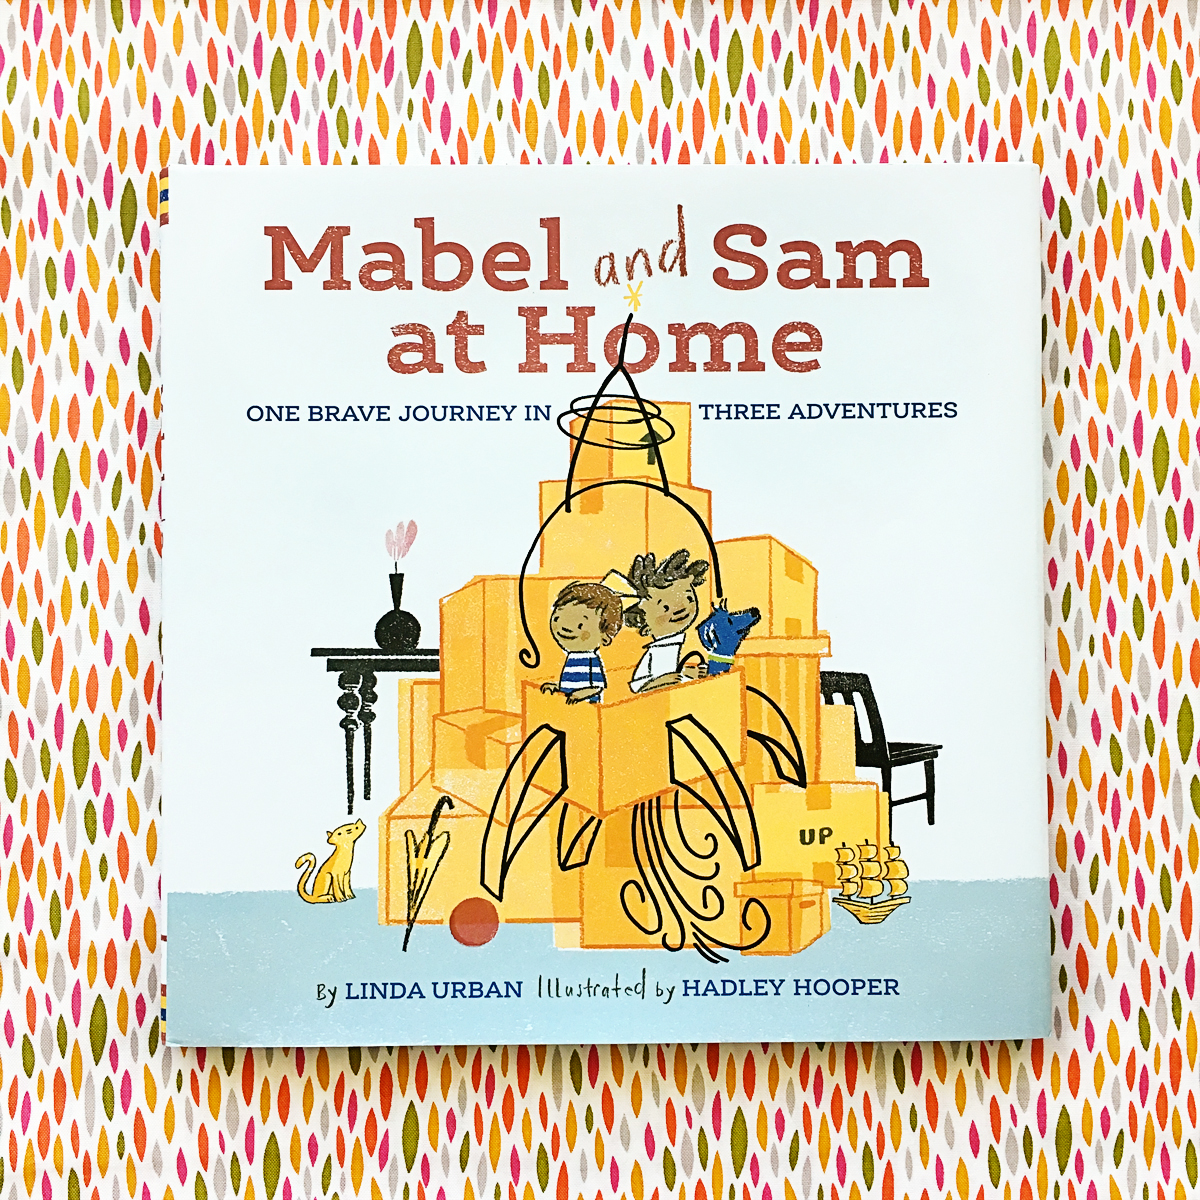 Mabel and Sam at Home: One Brave Journey in Three Adventures | Books For Diversity